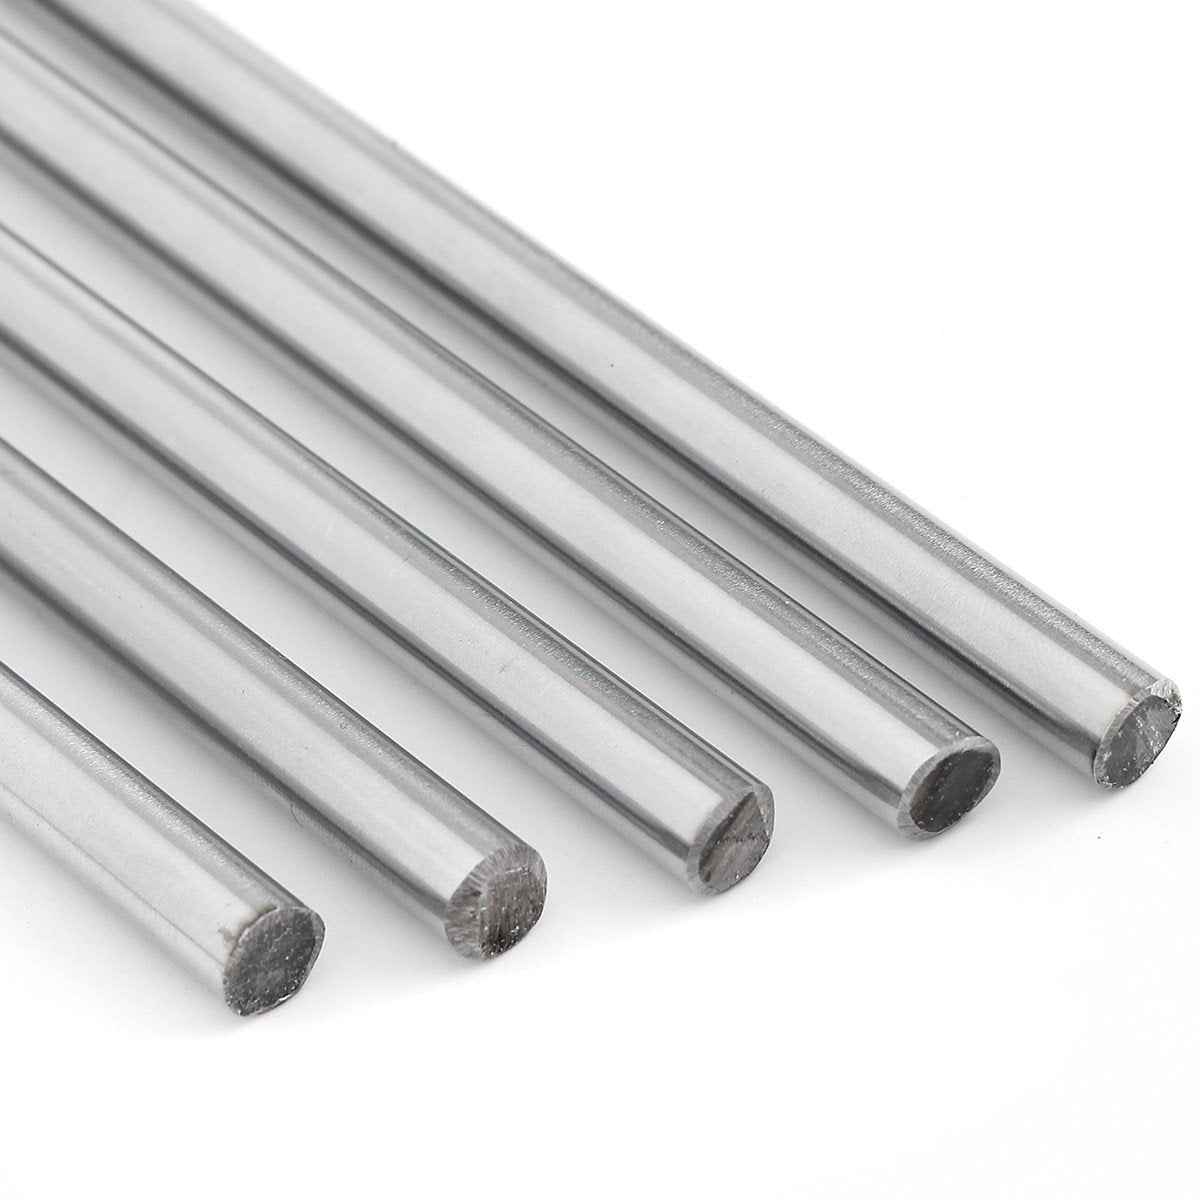 8mm Linear Rod 300 380 400 500mm 600m Chrome Harden Linear Shaft Guide Cnc 3d Printer Parts Liner Rail Linear Shaft Optical Axis